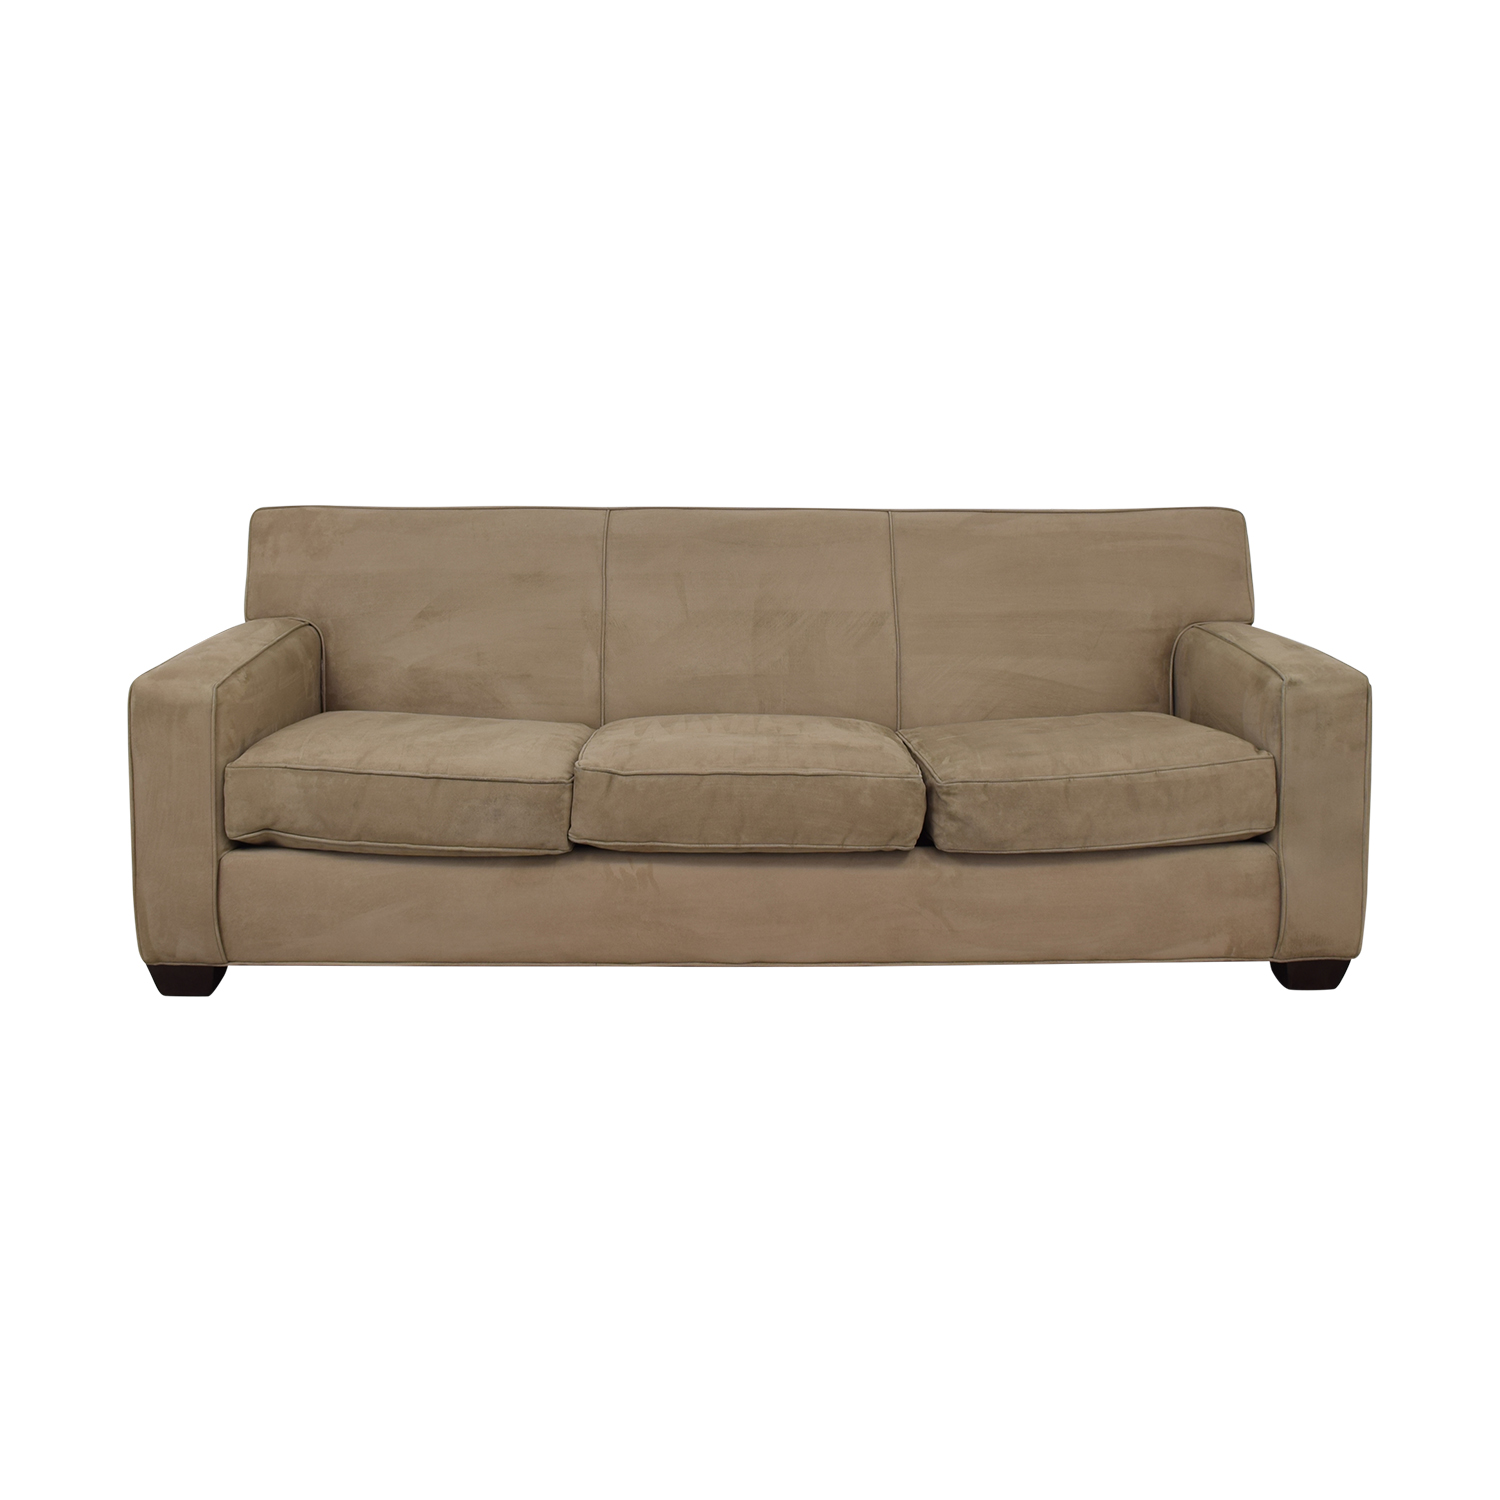 shop Crate & Barrel Tan Sofa Crate & Barrel Sofas